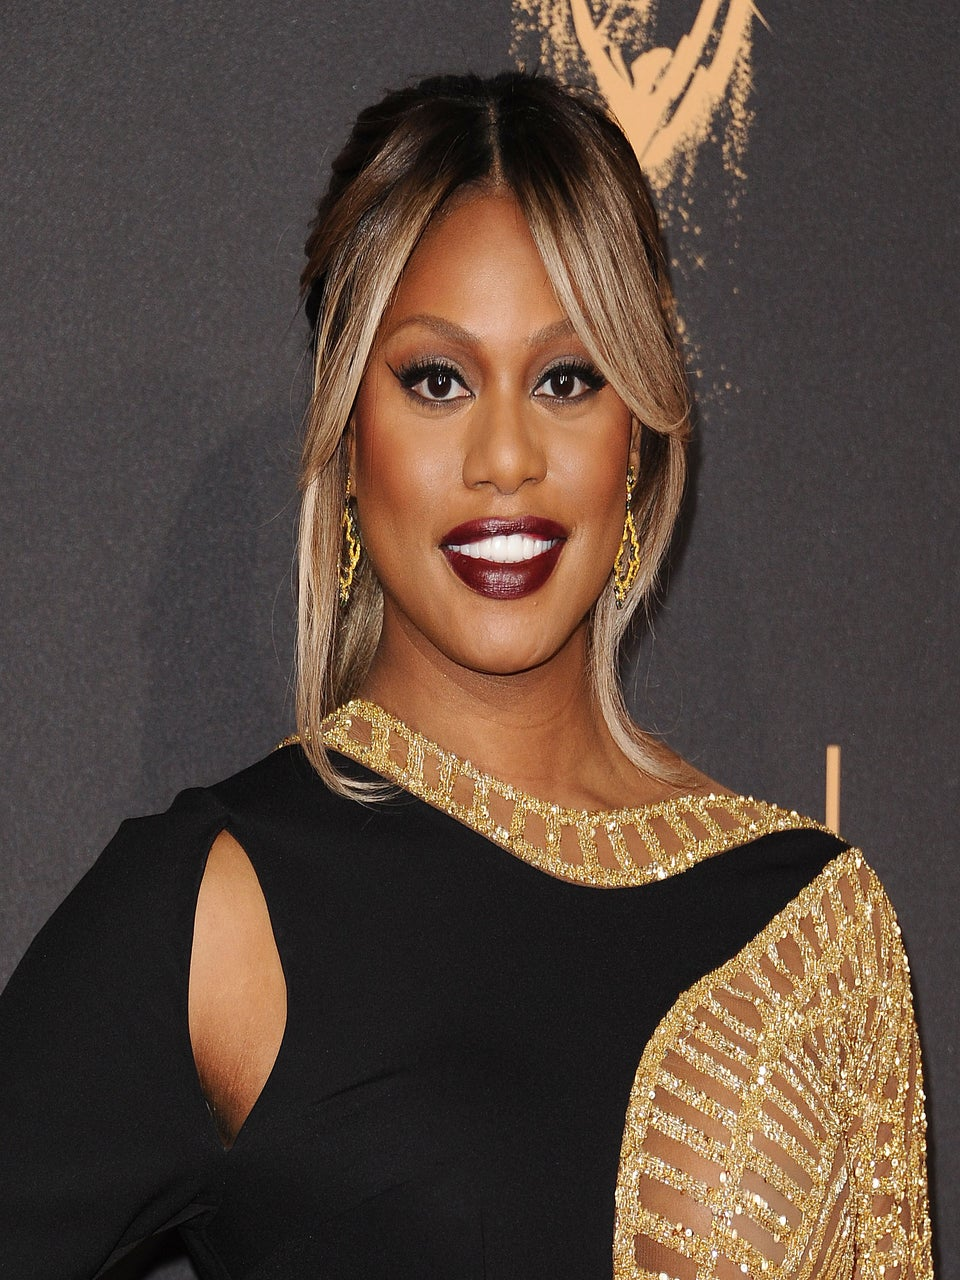 Laverne Cox Agrees To Guest Star On Black-ish After Emmys On-Air Invite From Anthony Anderson: 'I'll Be There!'